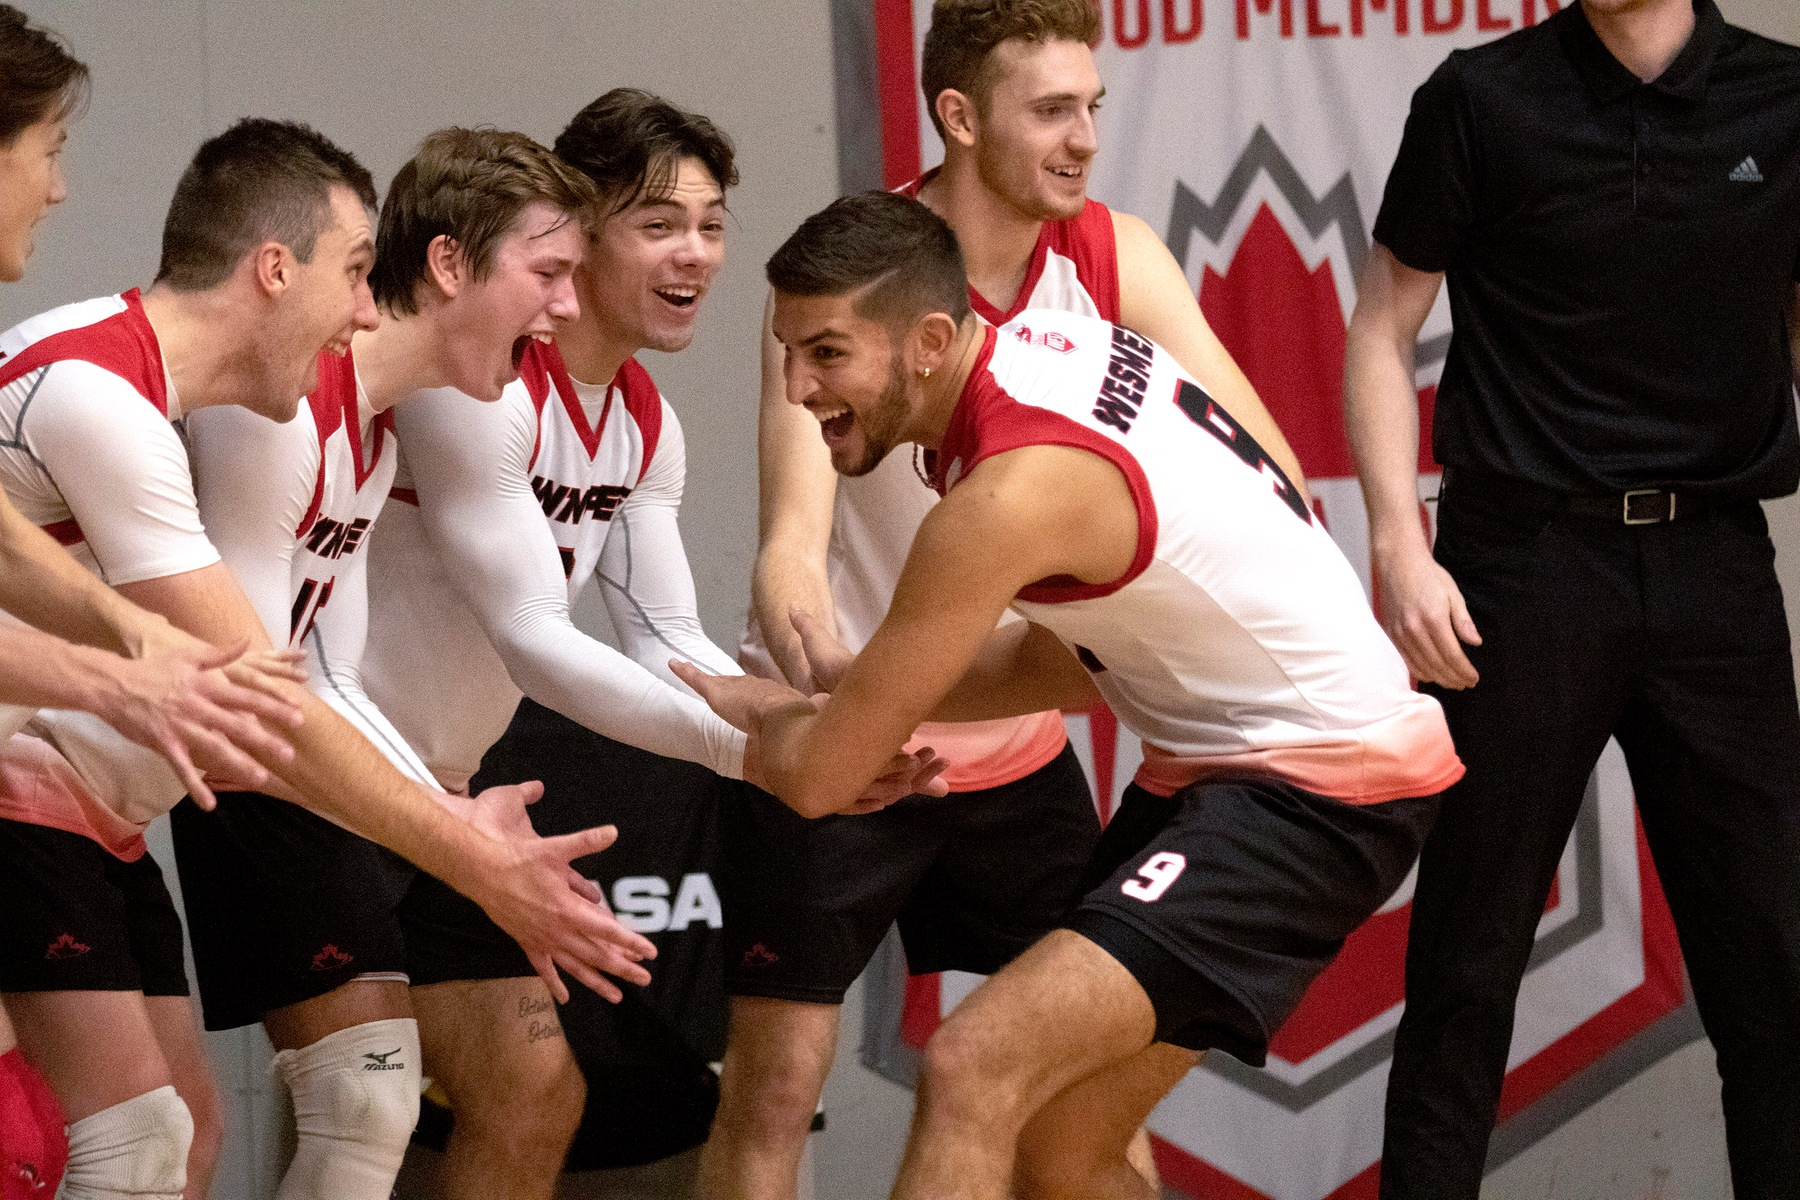 Nigel Nielsen had a career-high 11 kills to lead the Winnipeg Wesmen in a loss at Trinity Western, Saturday, Oct. 26, 2019. (David Larkins/Wesmen Athletics file)